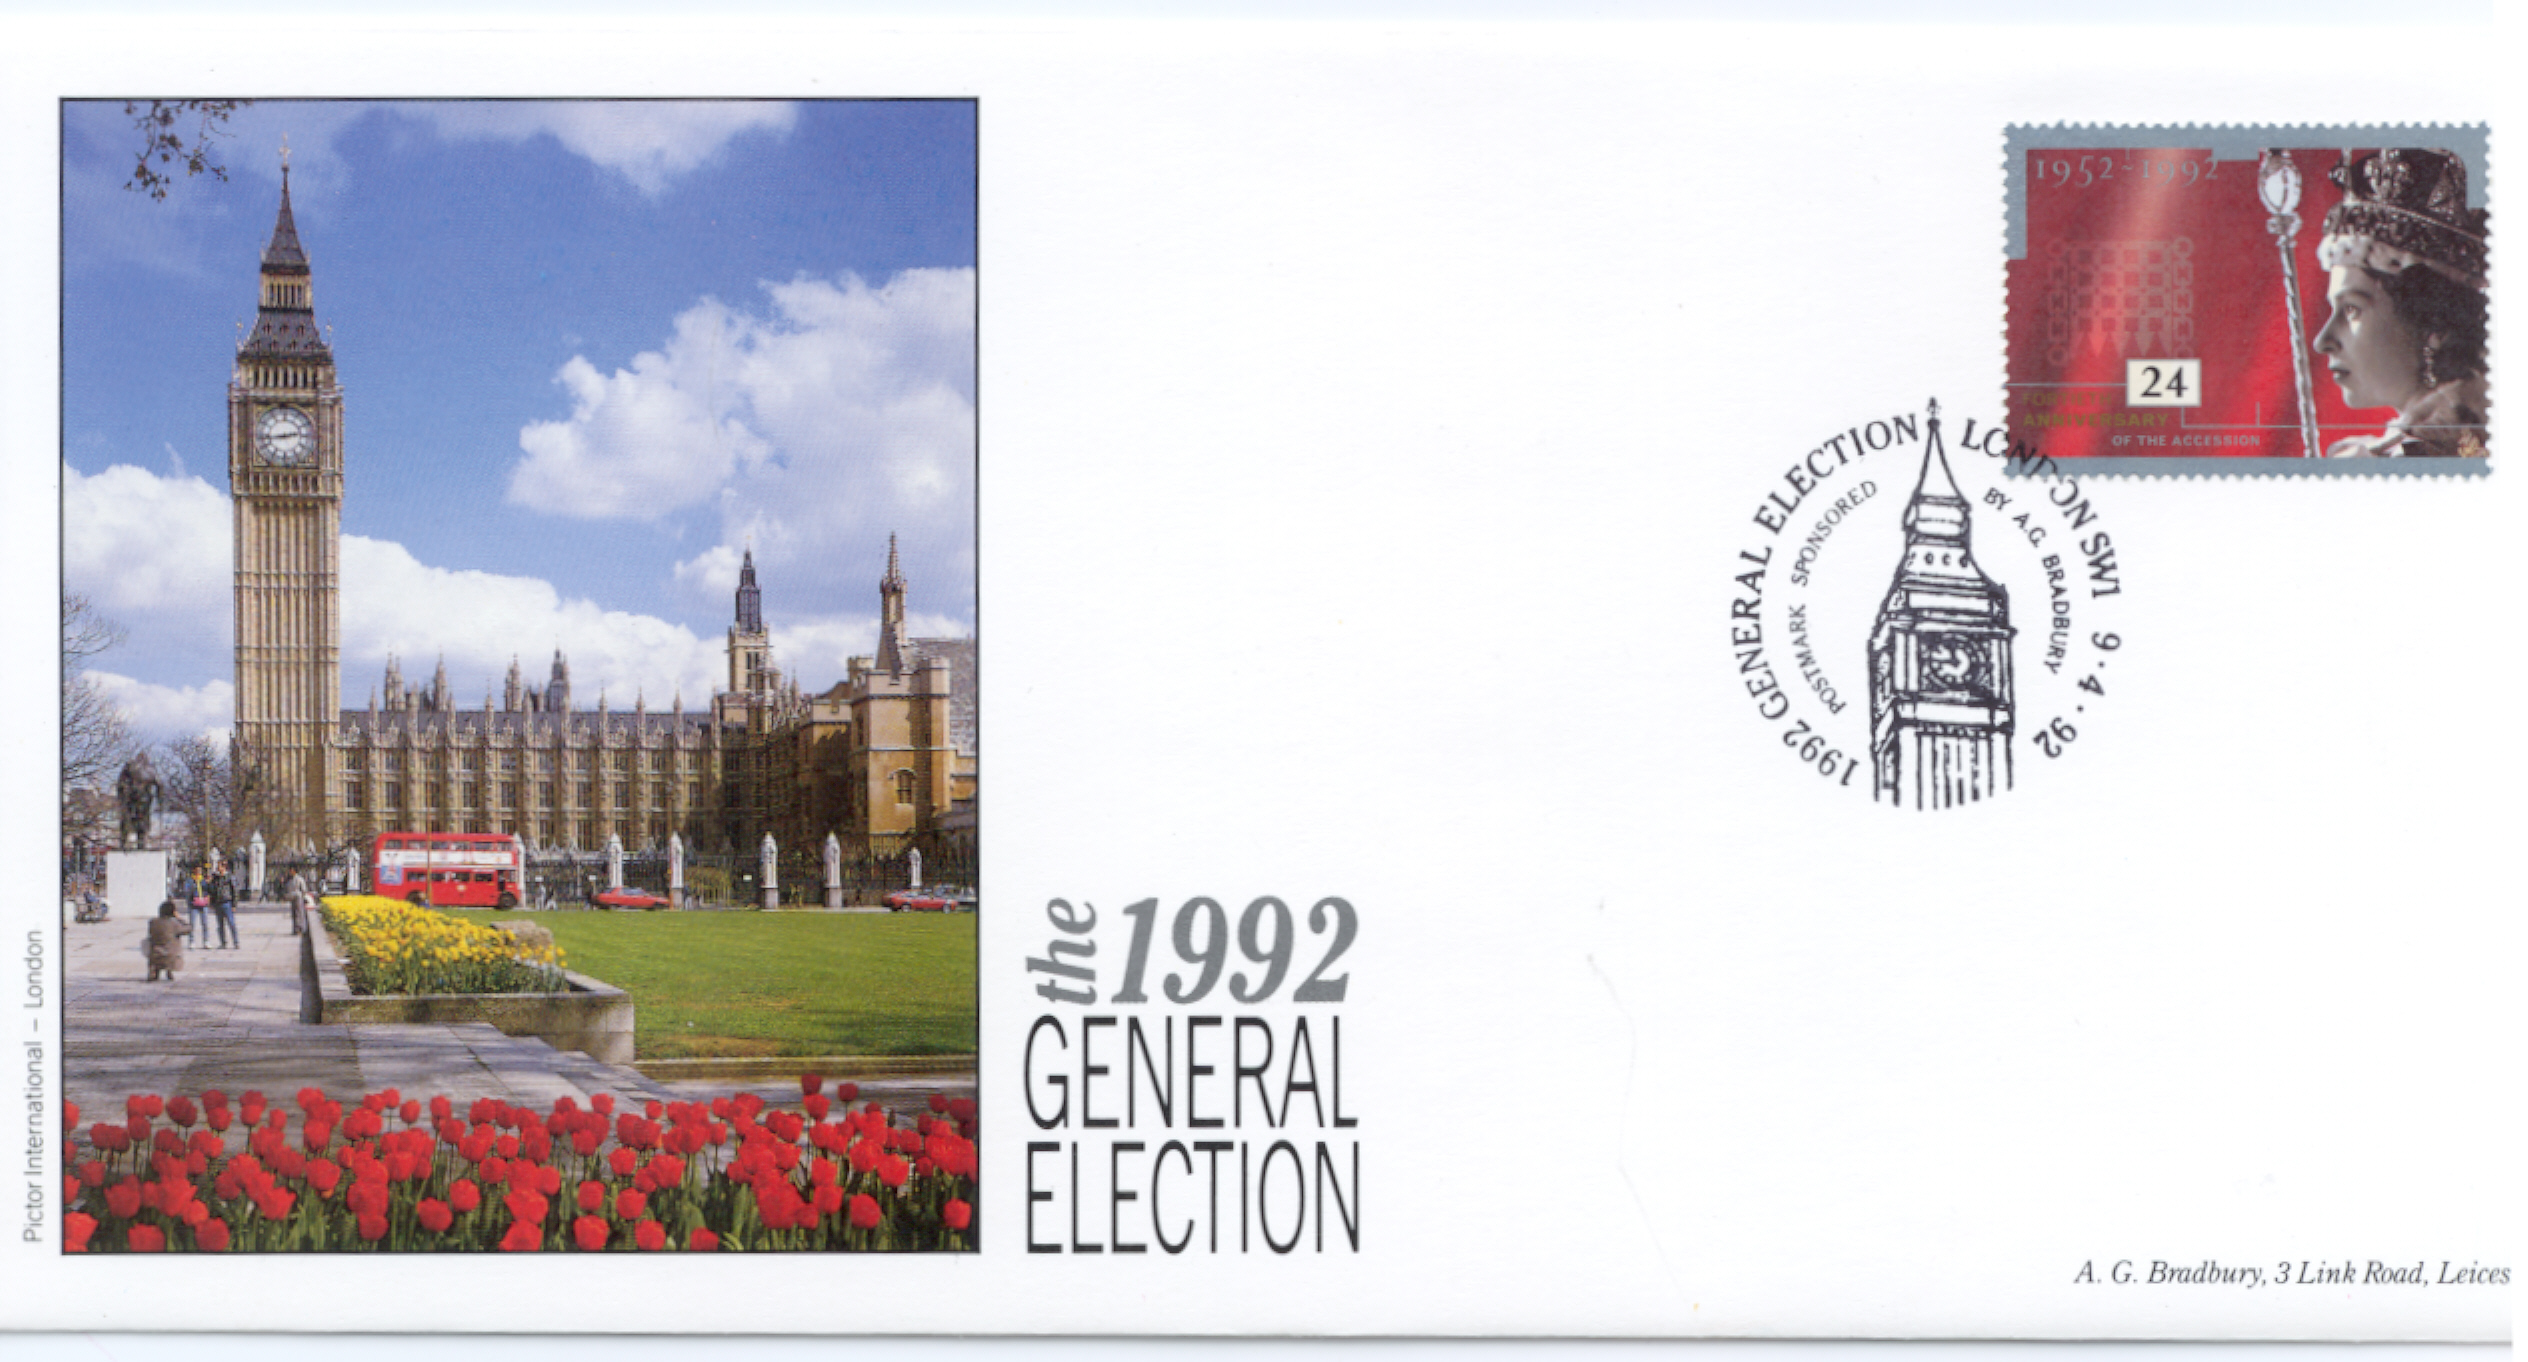 1992 General Election cover